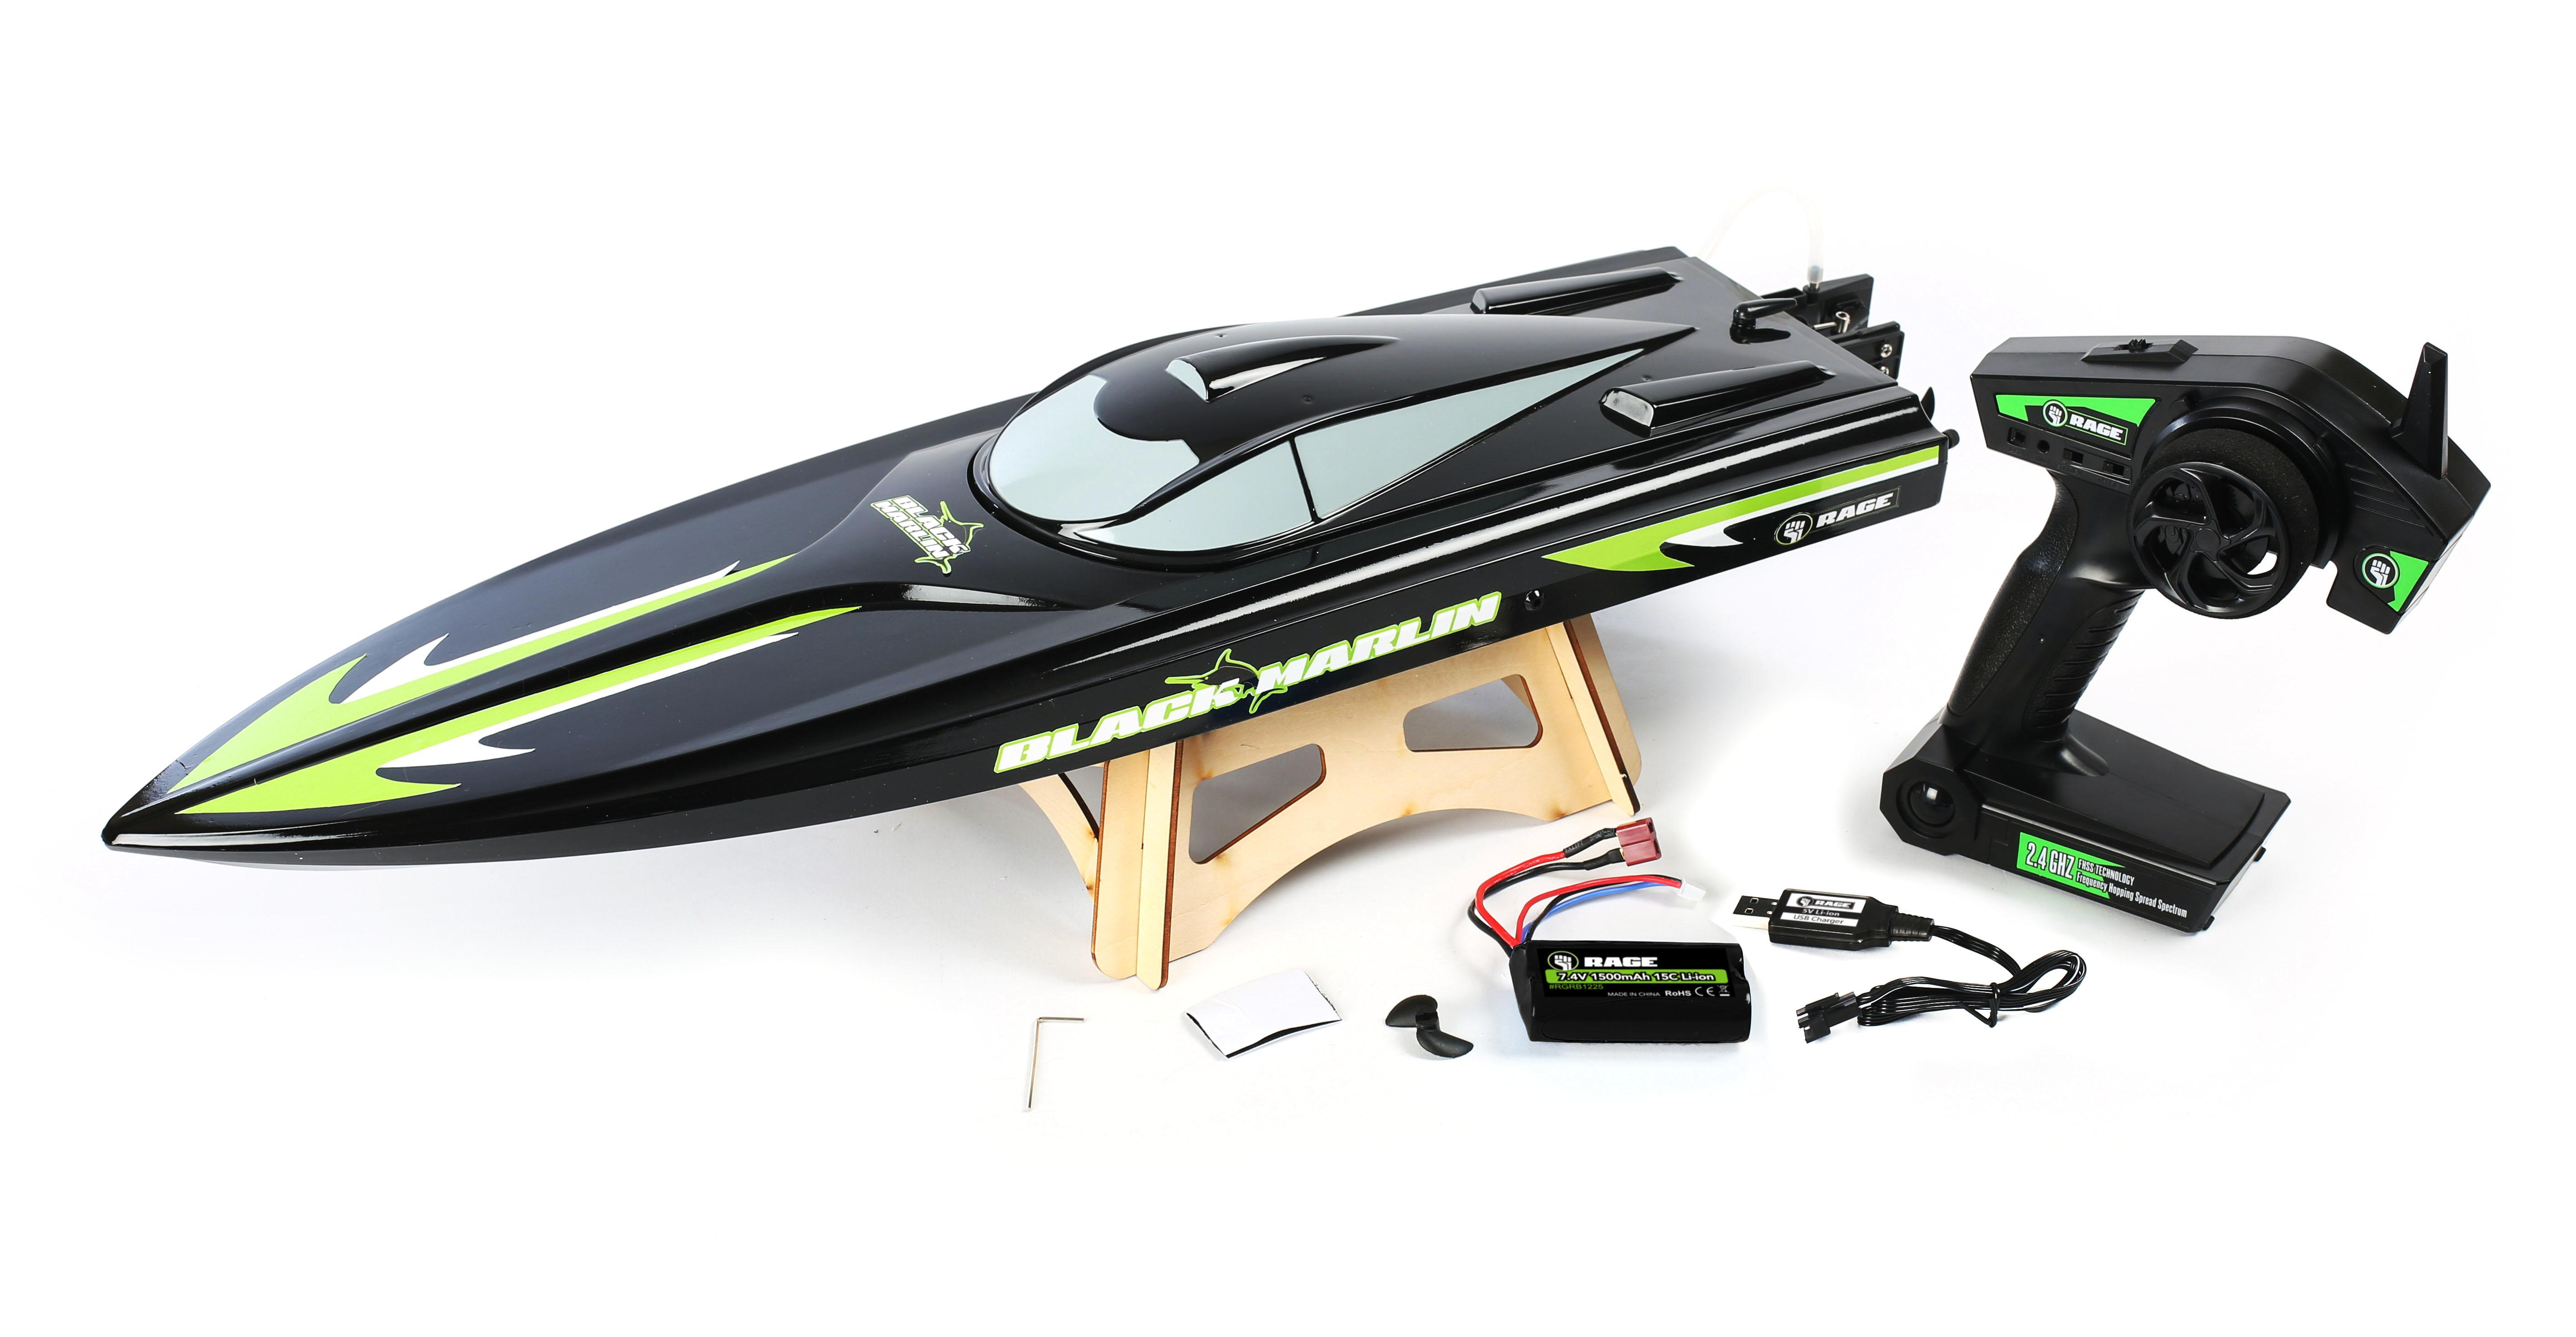 Rage Rc B1200 Black Marlin Ready To Float Radio Control Tips On Powering Servos Receivers Radios And Vehicles With Lipos From The Manufacturer